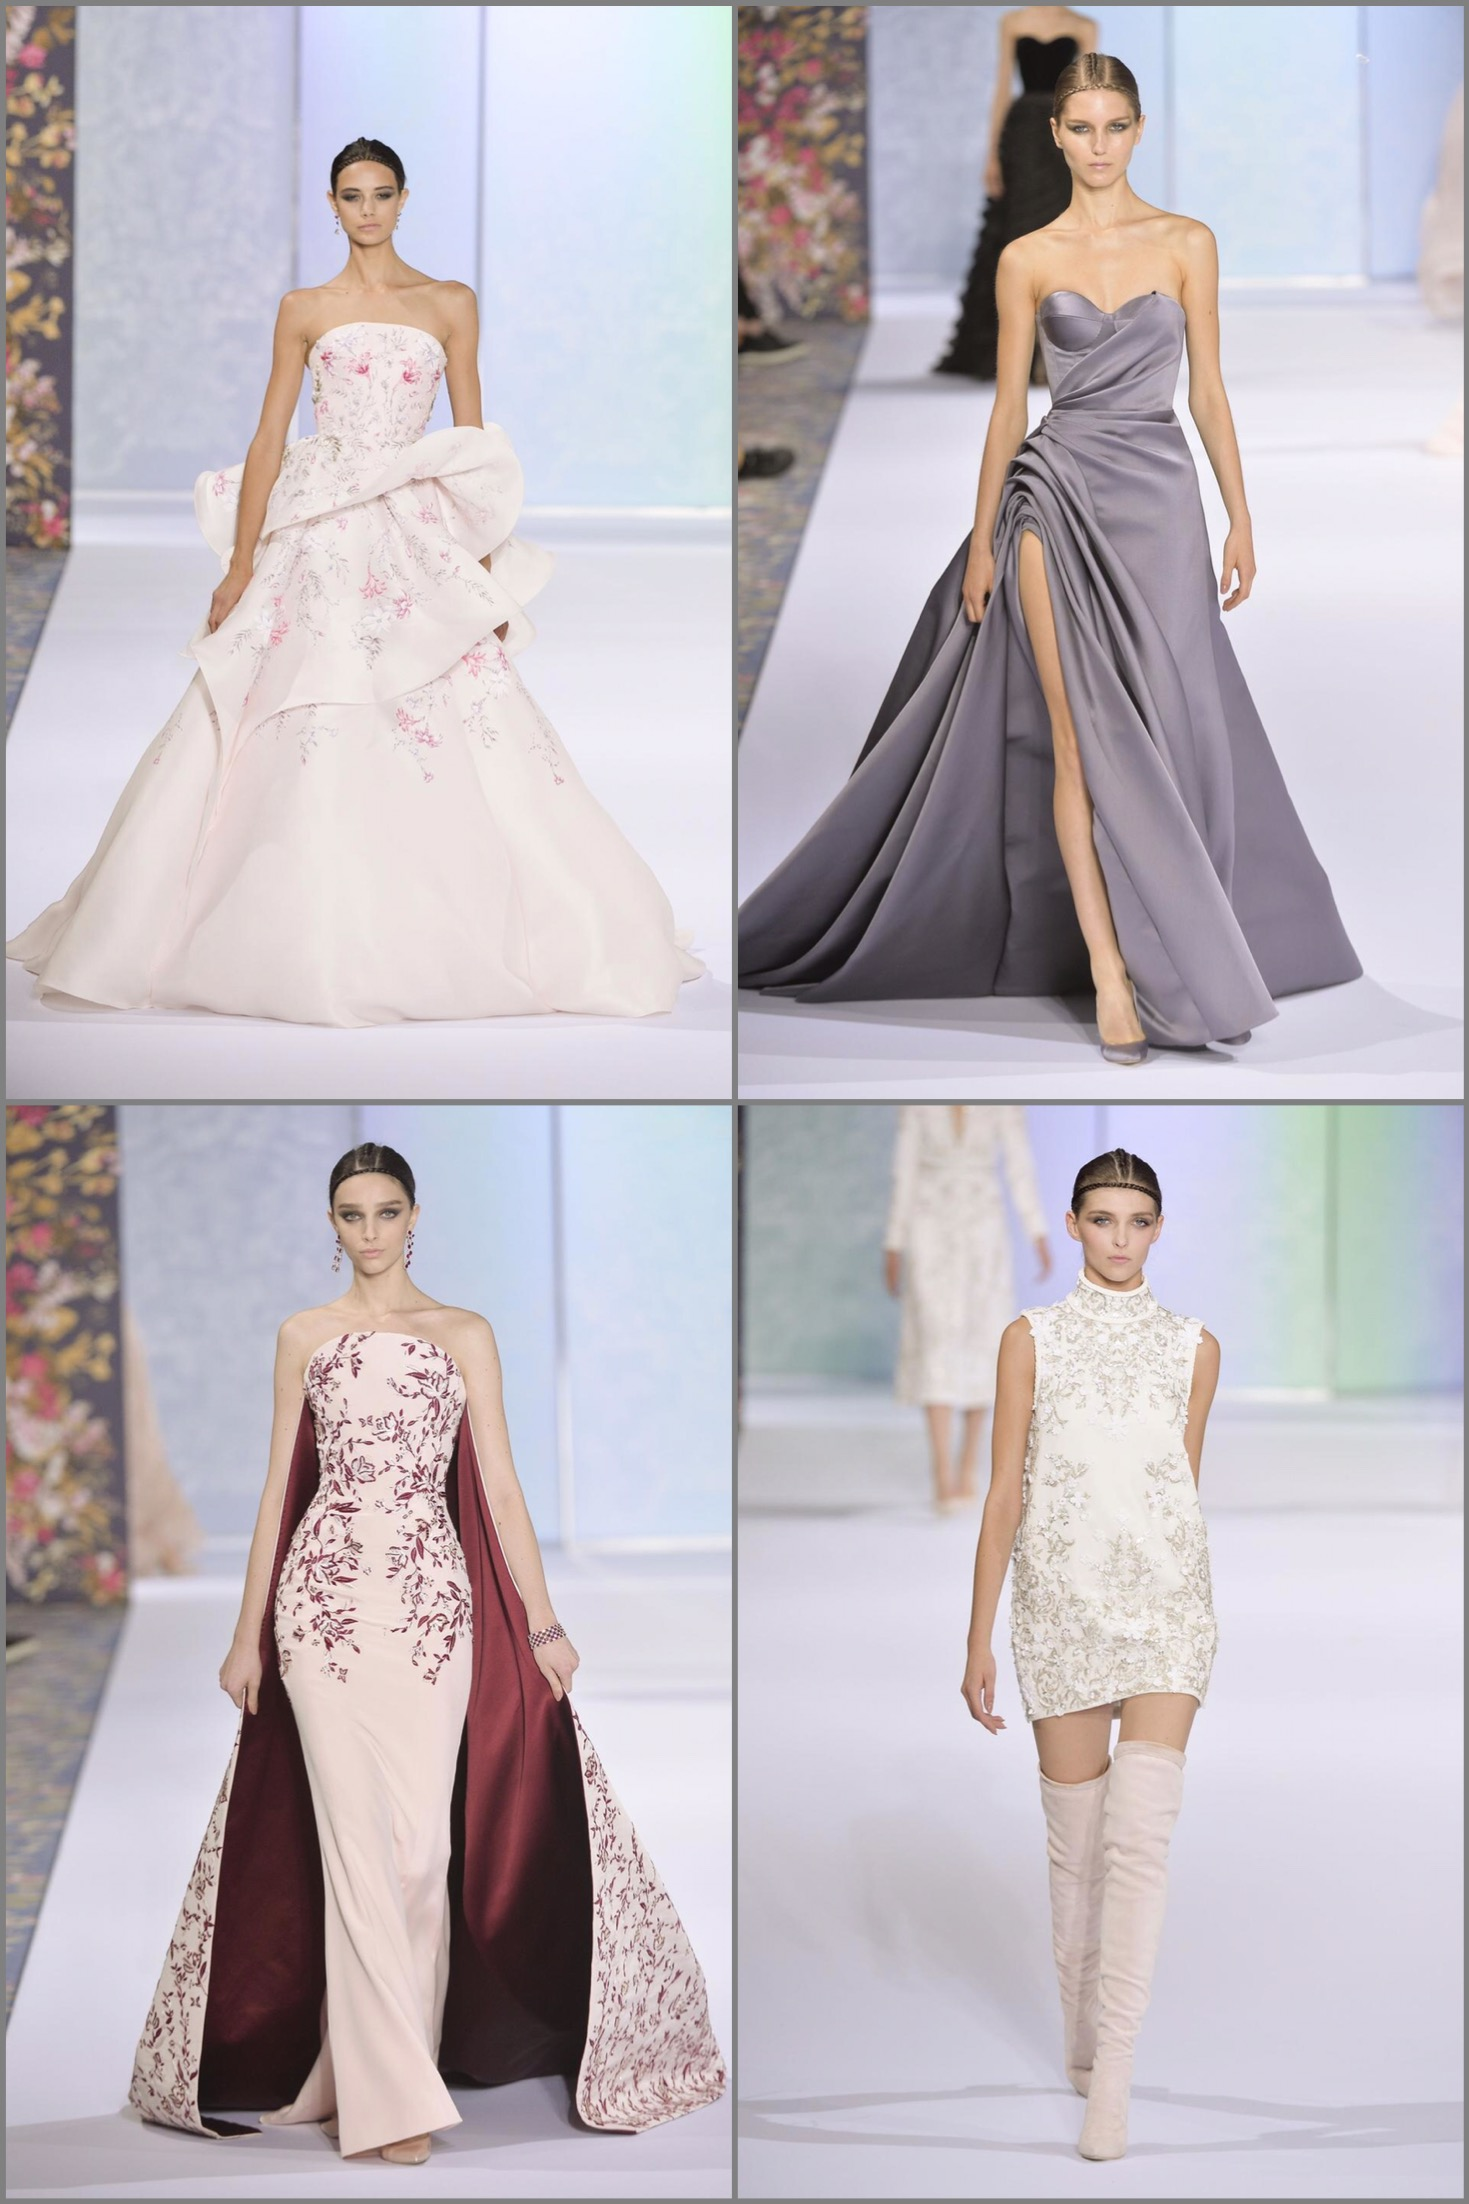 Paris Couture Week Fall Winter 2016-2017 - Ralph & Russo